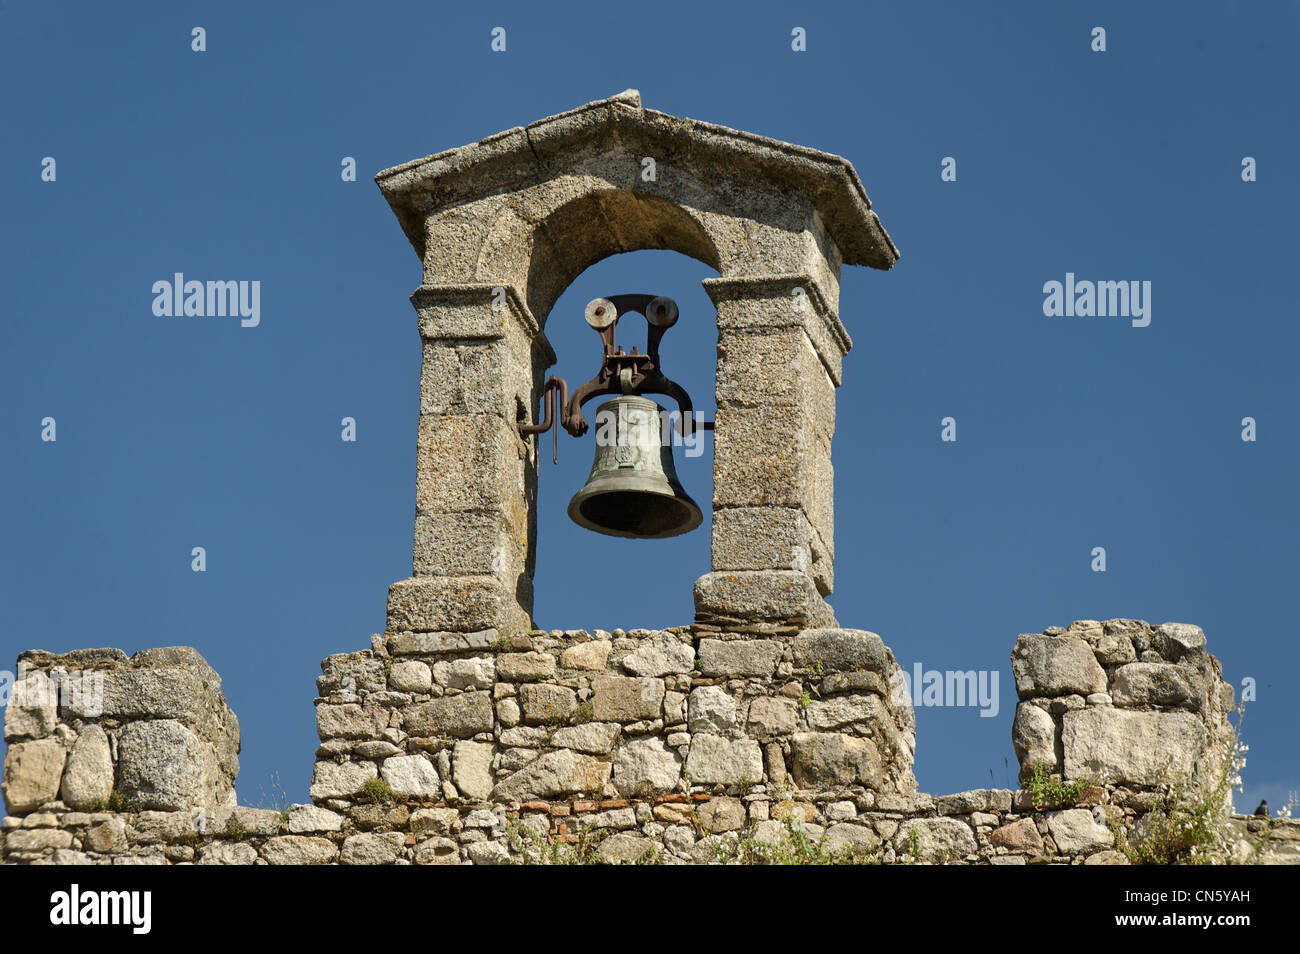 Spain, Extremadura, Trujillo, alarm bell on the battlements of the castle walls - Stock Image